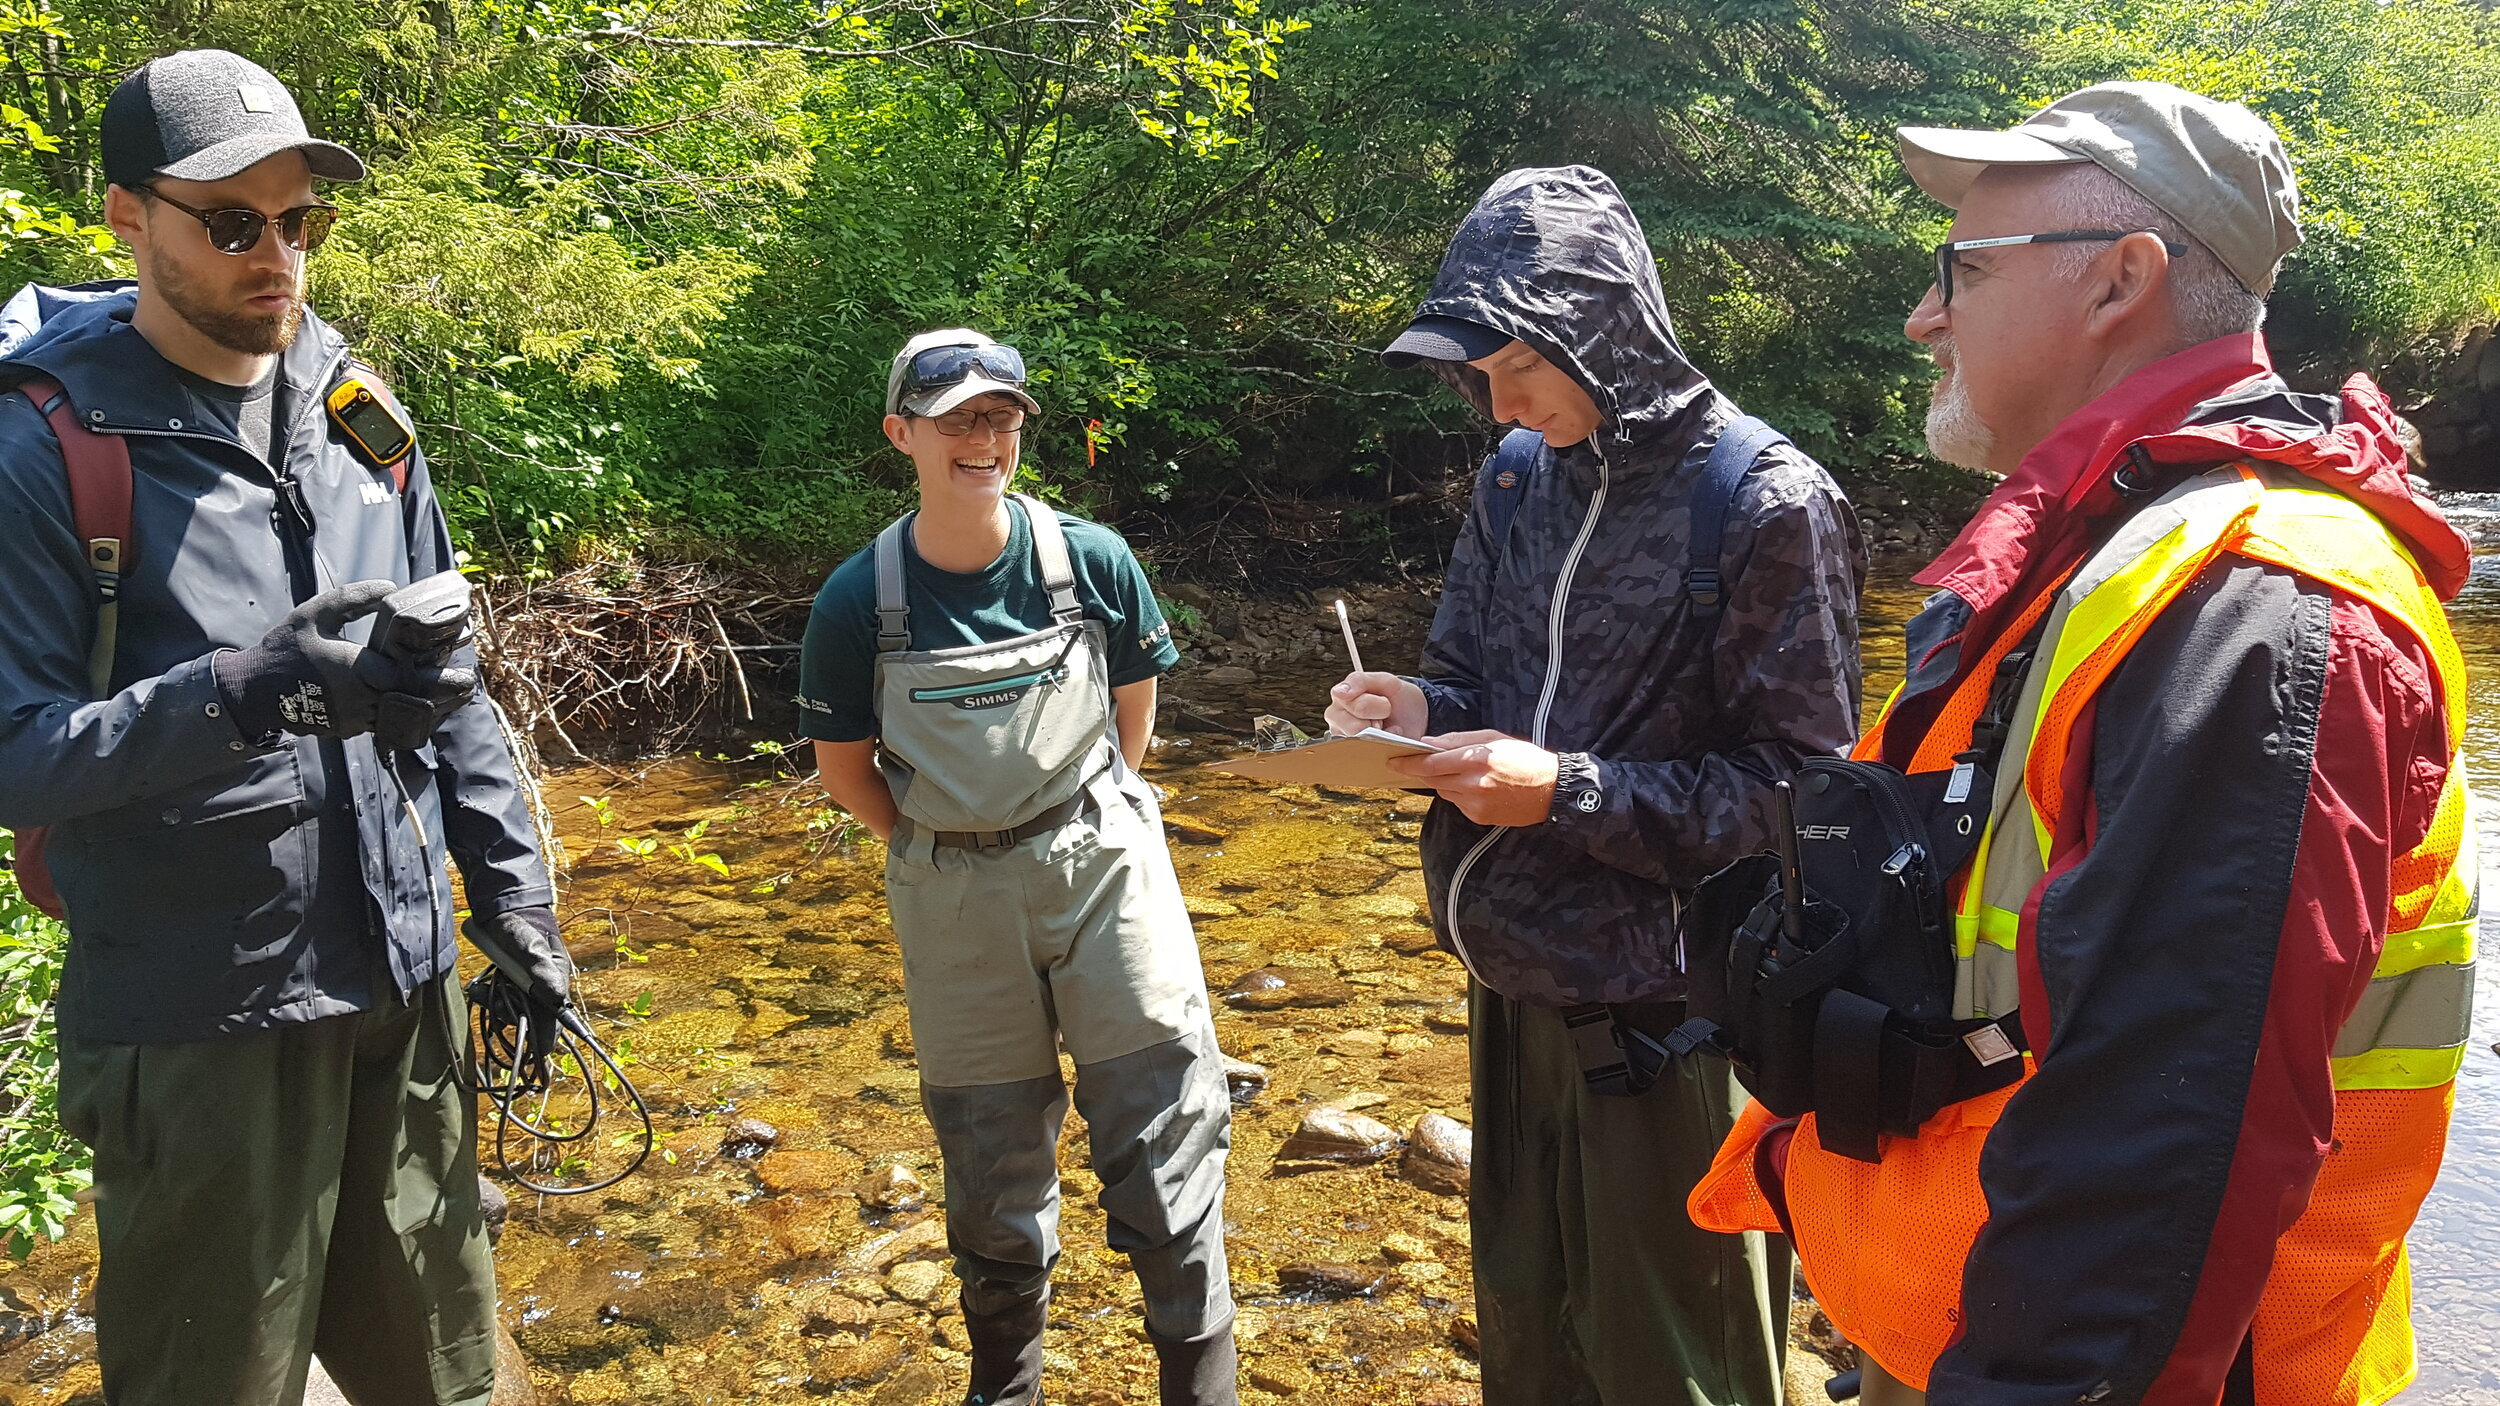 The CRSA worked closely with partners at Cape Breton Highlands National Park to conduct habitat assessments on the Cheticampy River this summer